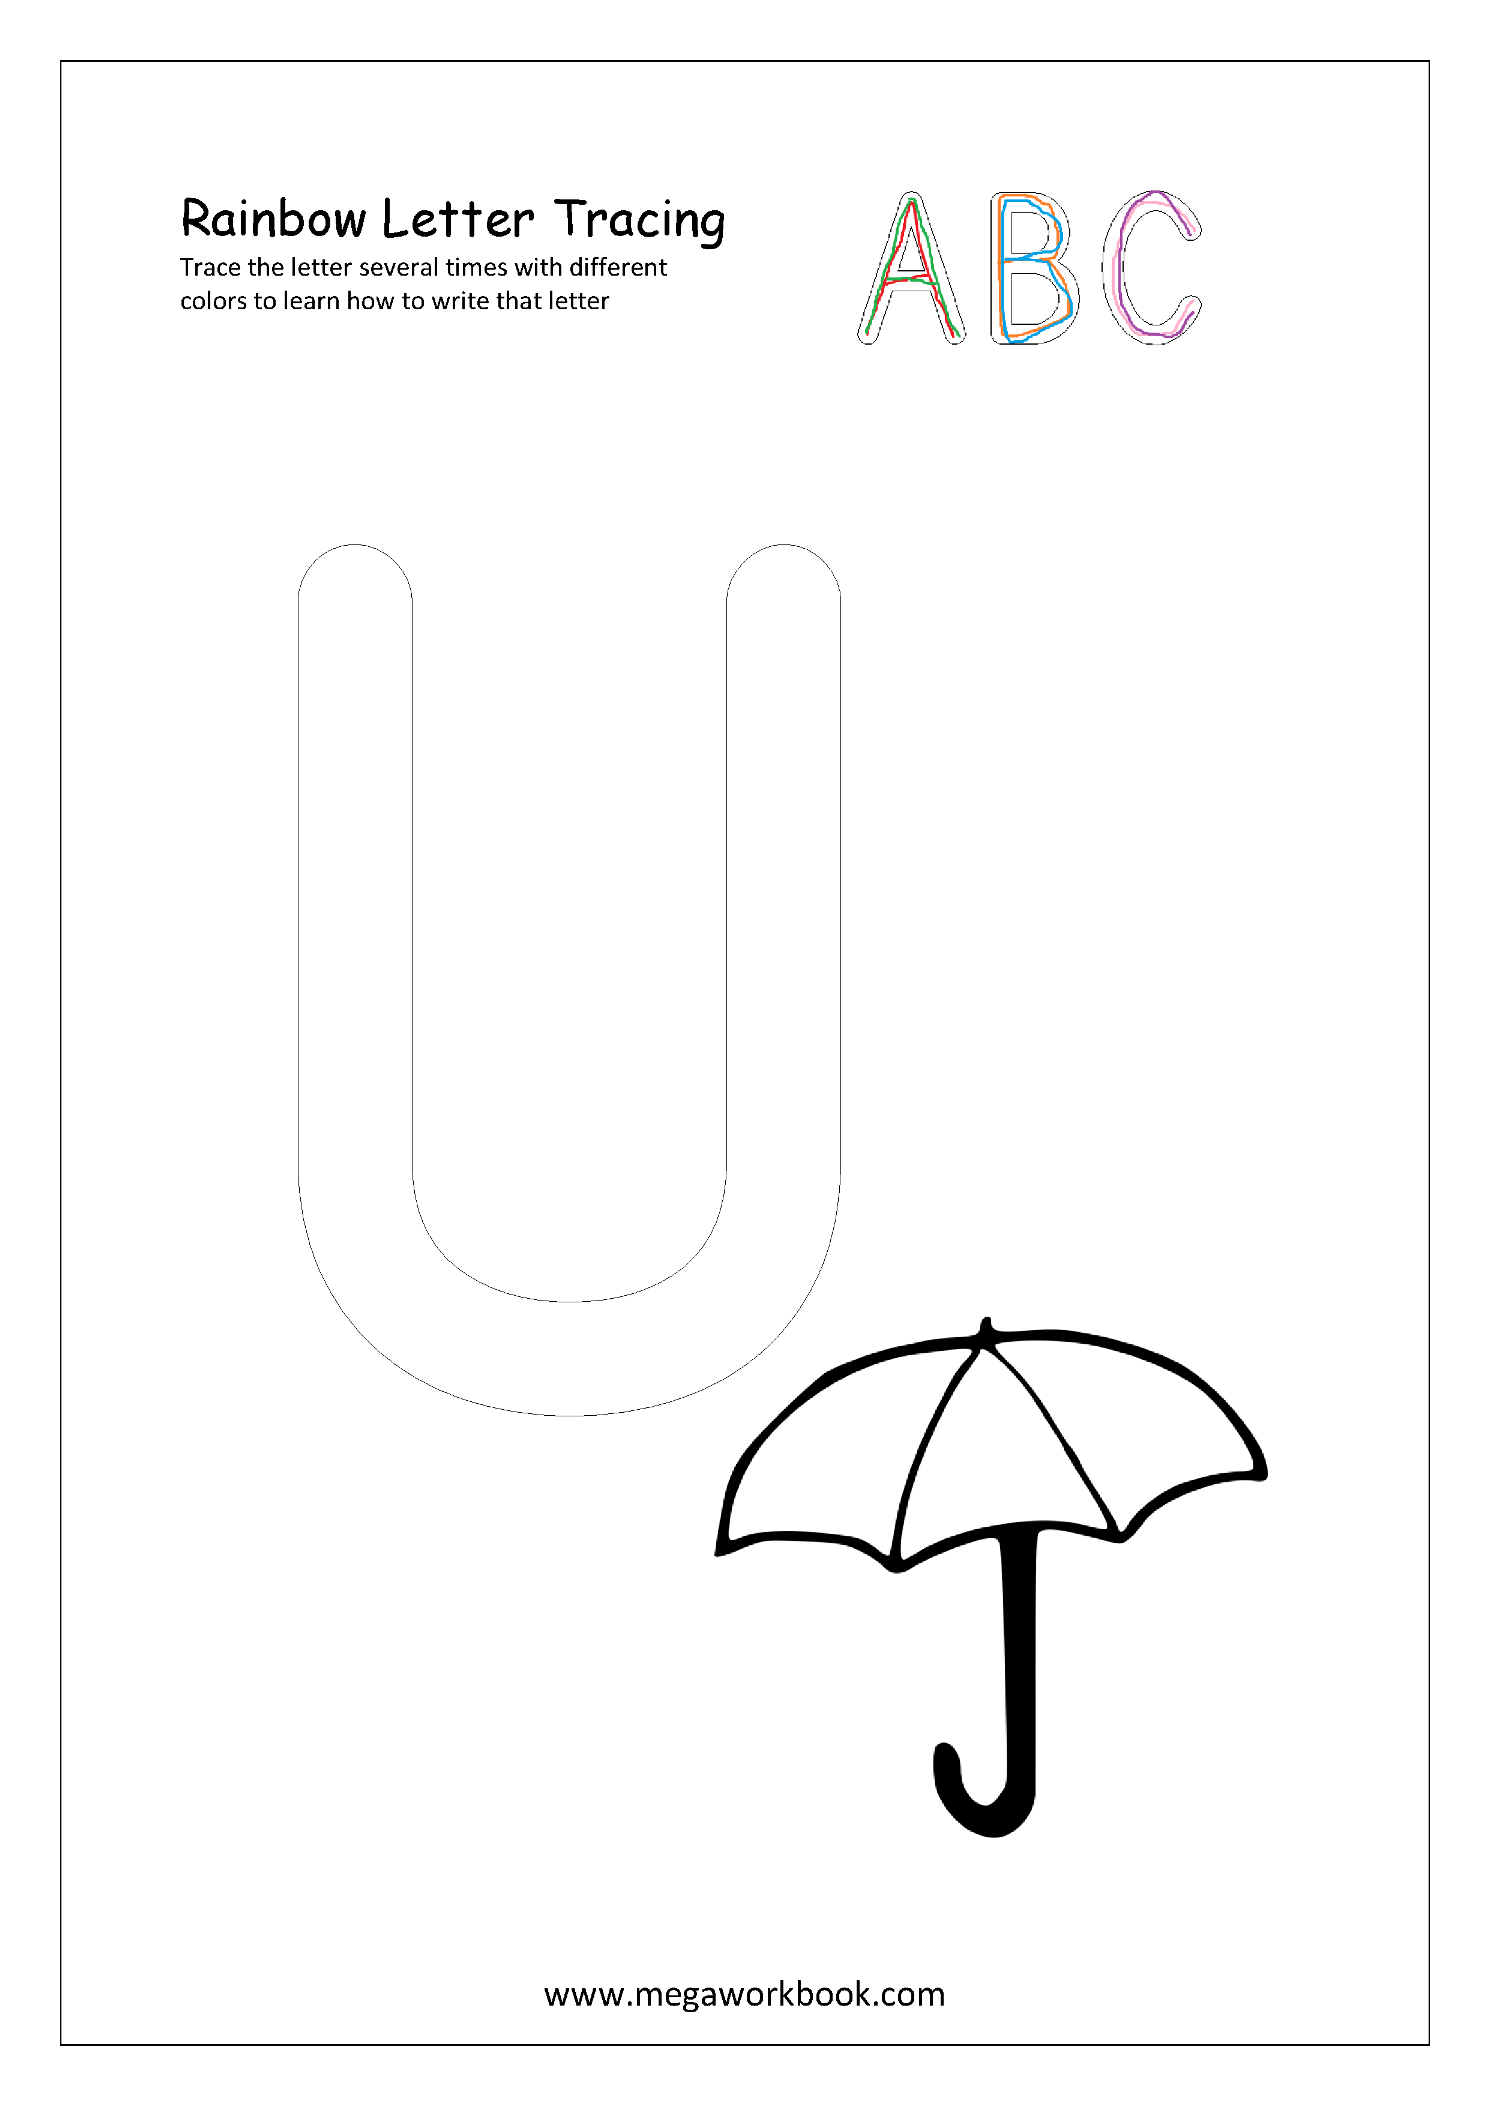 Free Printable Rainbow Writing Worksheets Rainbow Letter